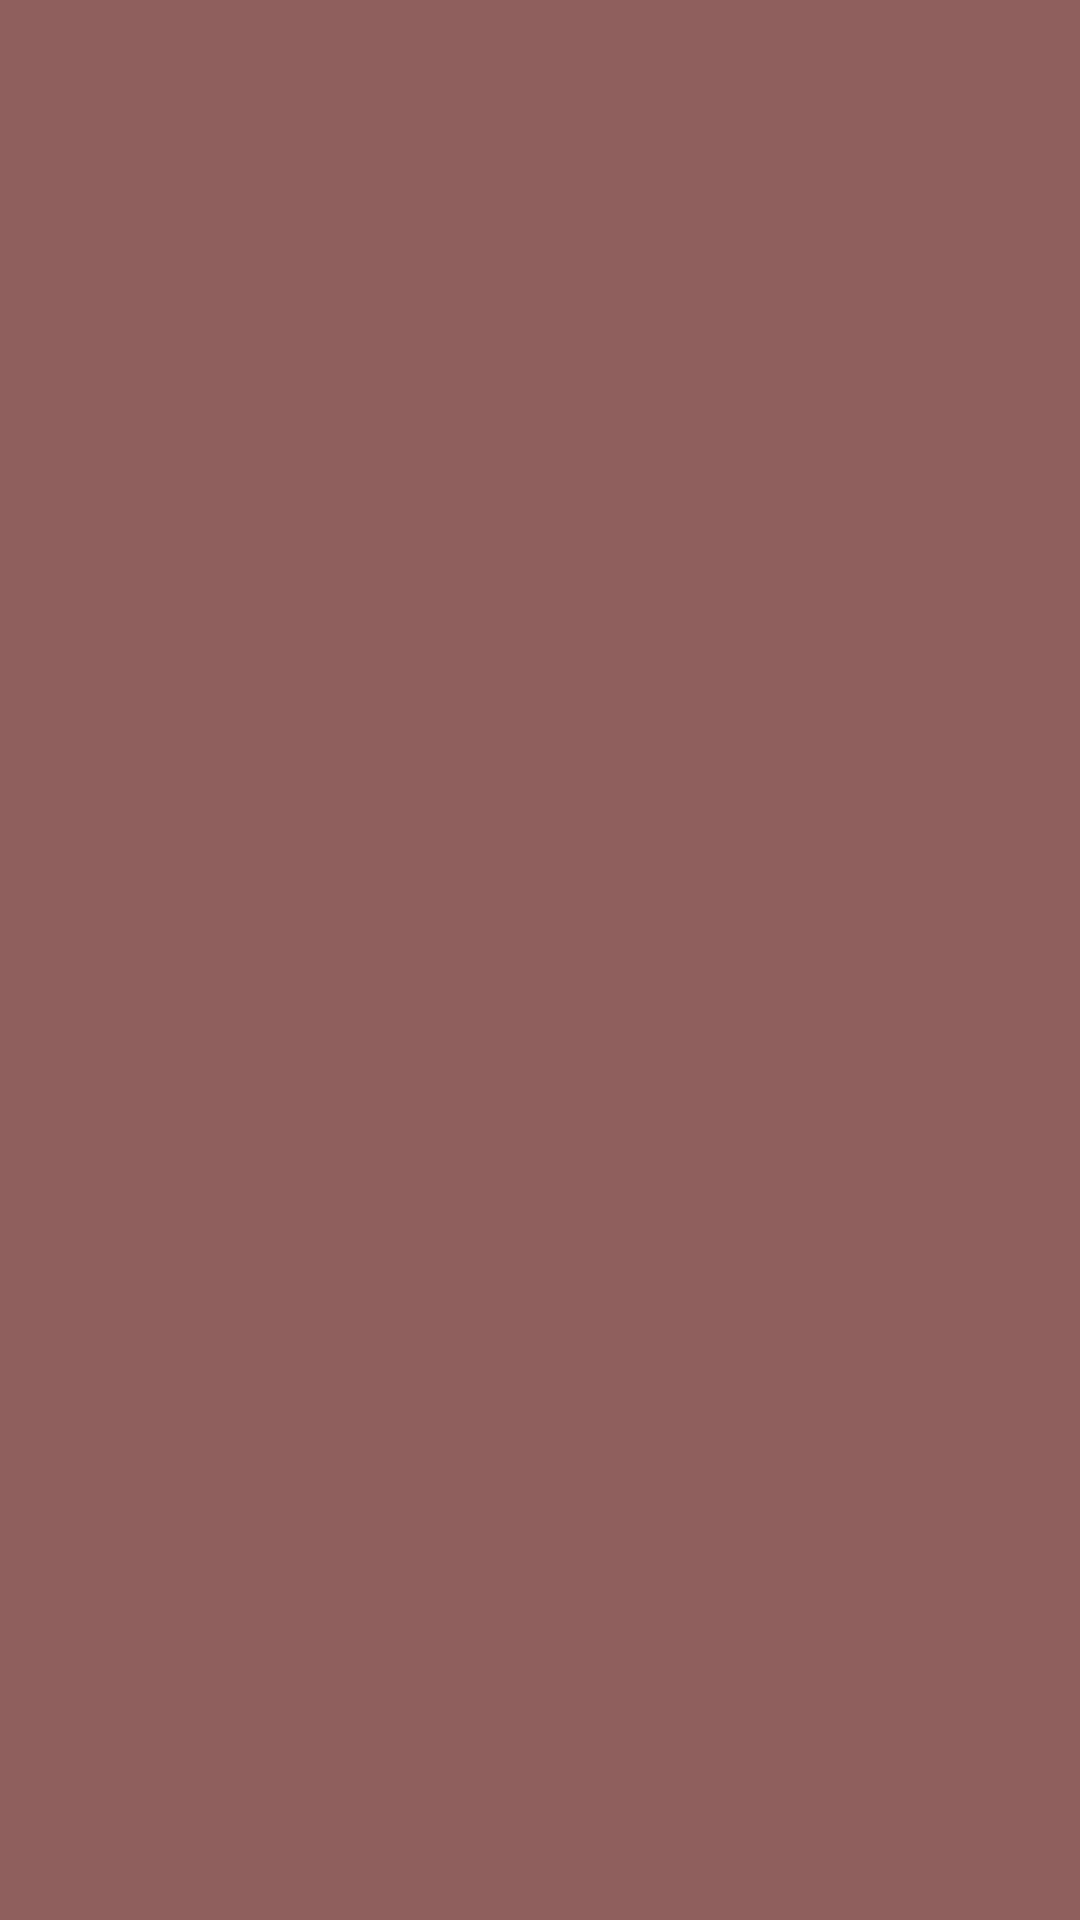 1080x1920 Rose Taupe Solid Color Background